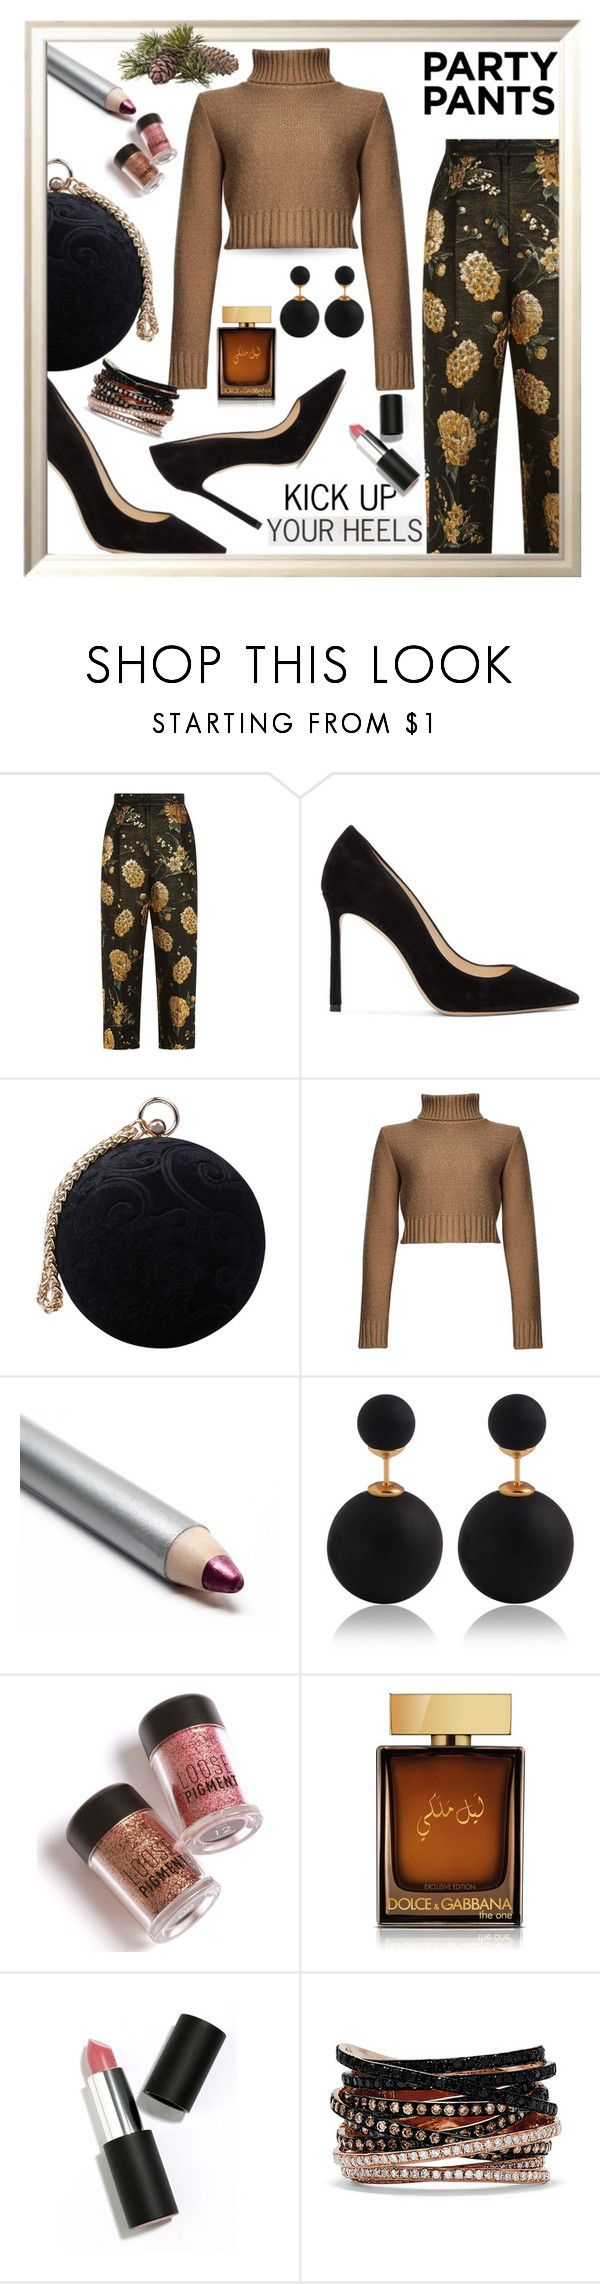 """""""Kick up your heels! #PolyPresents Party Pants"""" by queenofsienna ❤ liked on Polyvore featuring Dolce&Gabbana, Jimmy Choo, Carvela, D&G, Sigma, Effy Jewelry, contestentry, polyPresents and partypants"""